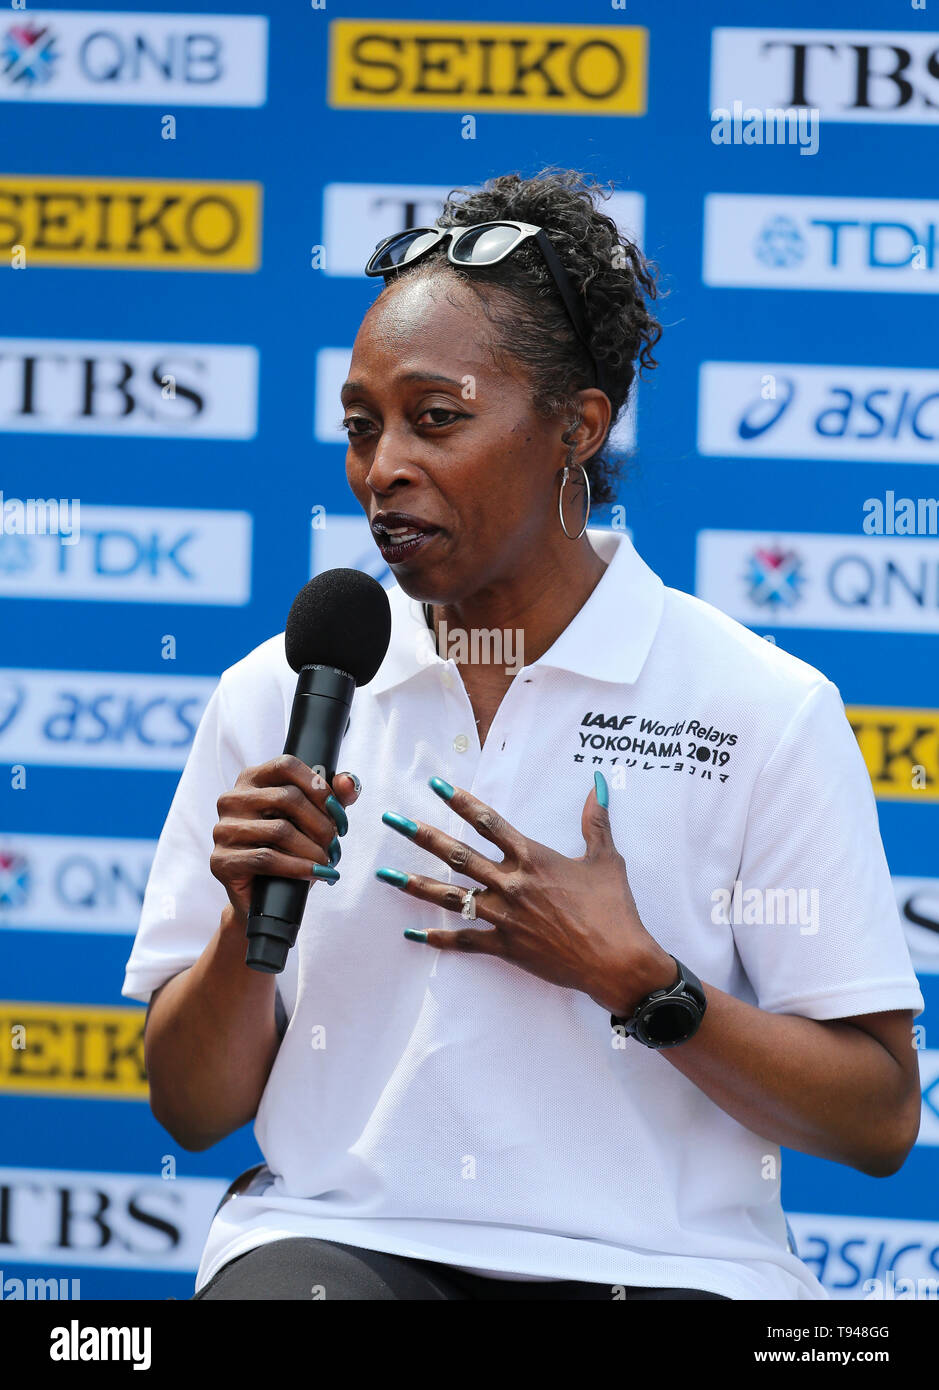 YOKOHAMA, JAPAN - MAY 10: Gail Devers, IAAF Ambassador, during the official press conference of the 2019 IAAF World Relay Championships at the Nissan Stadium on May 10, 2019 in Yokohama, Japan. (Photo by Roger Sedres for the IAAF) Stock Photo